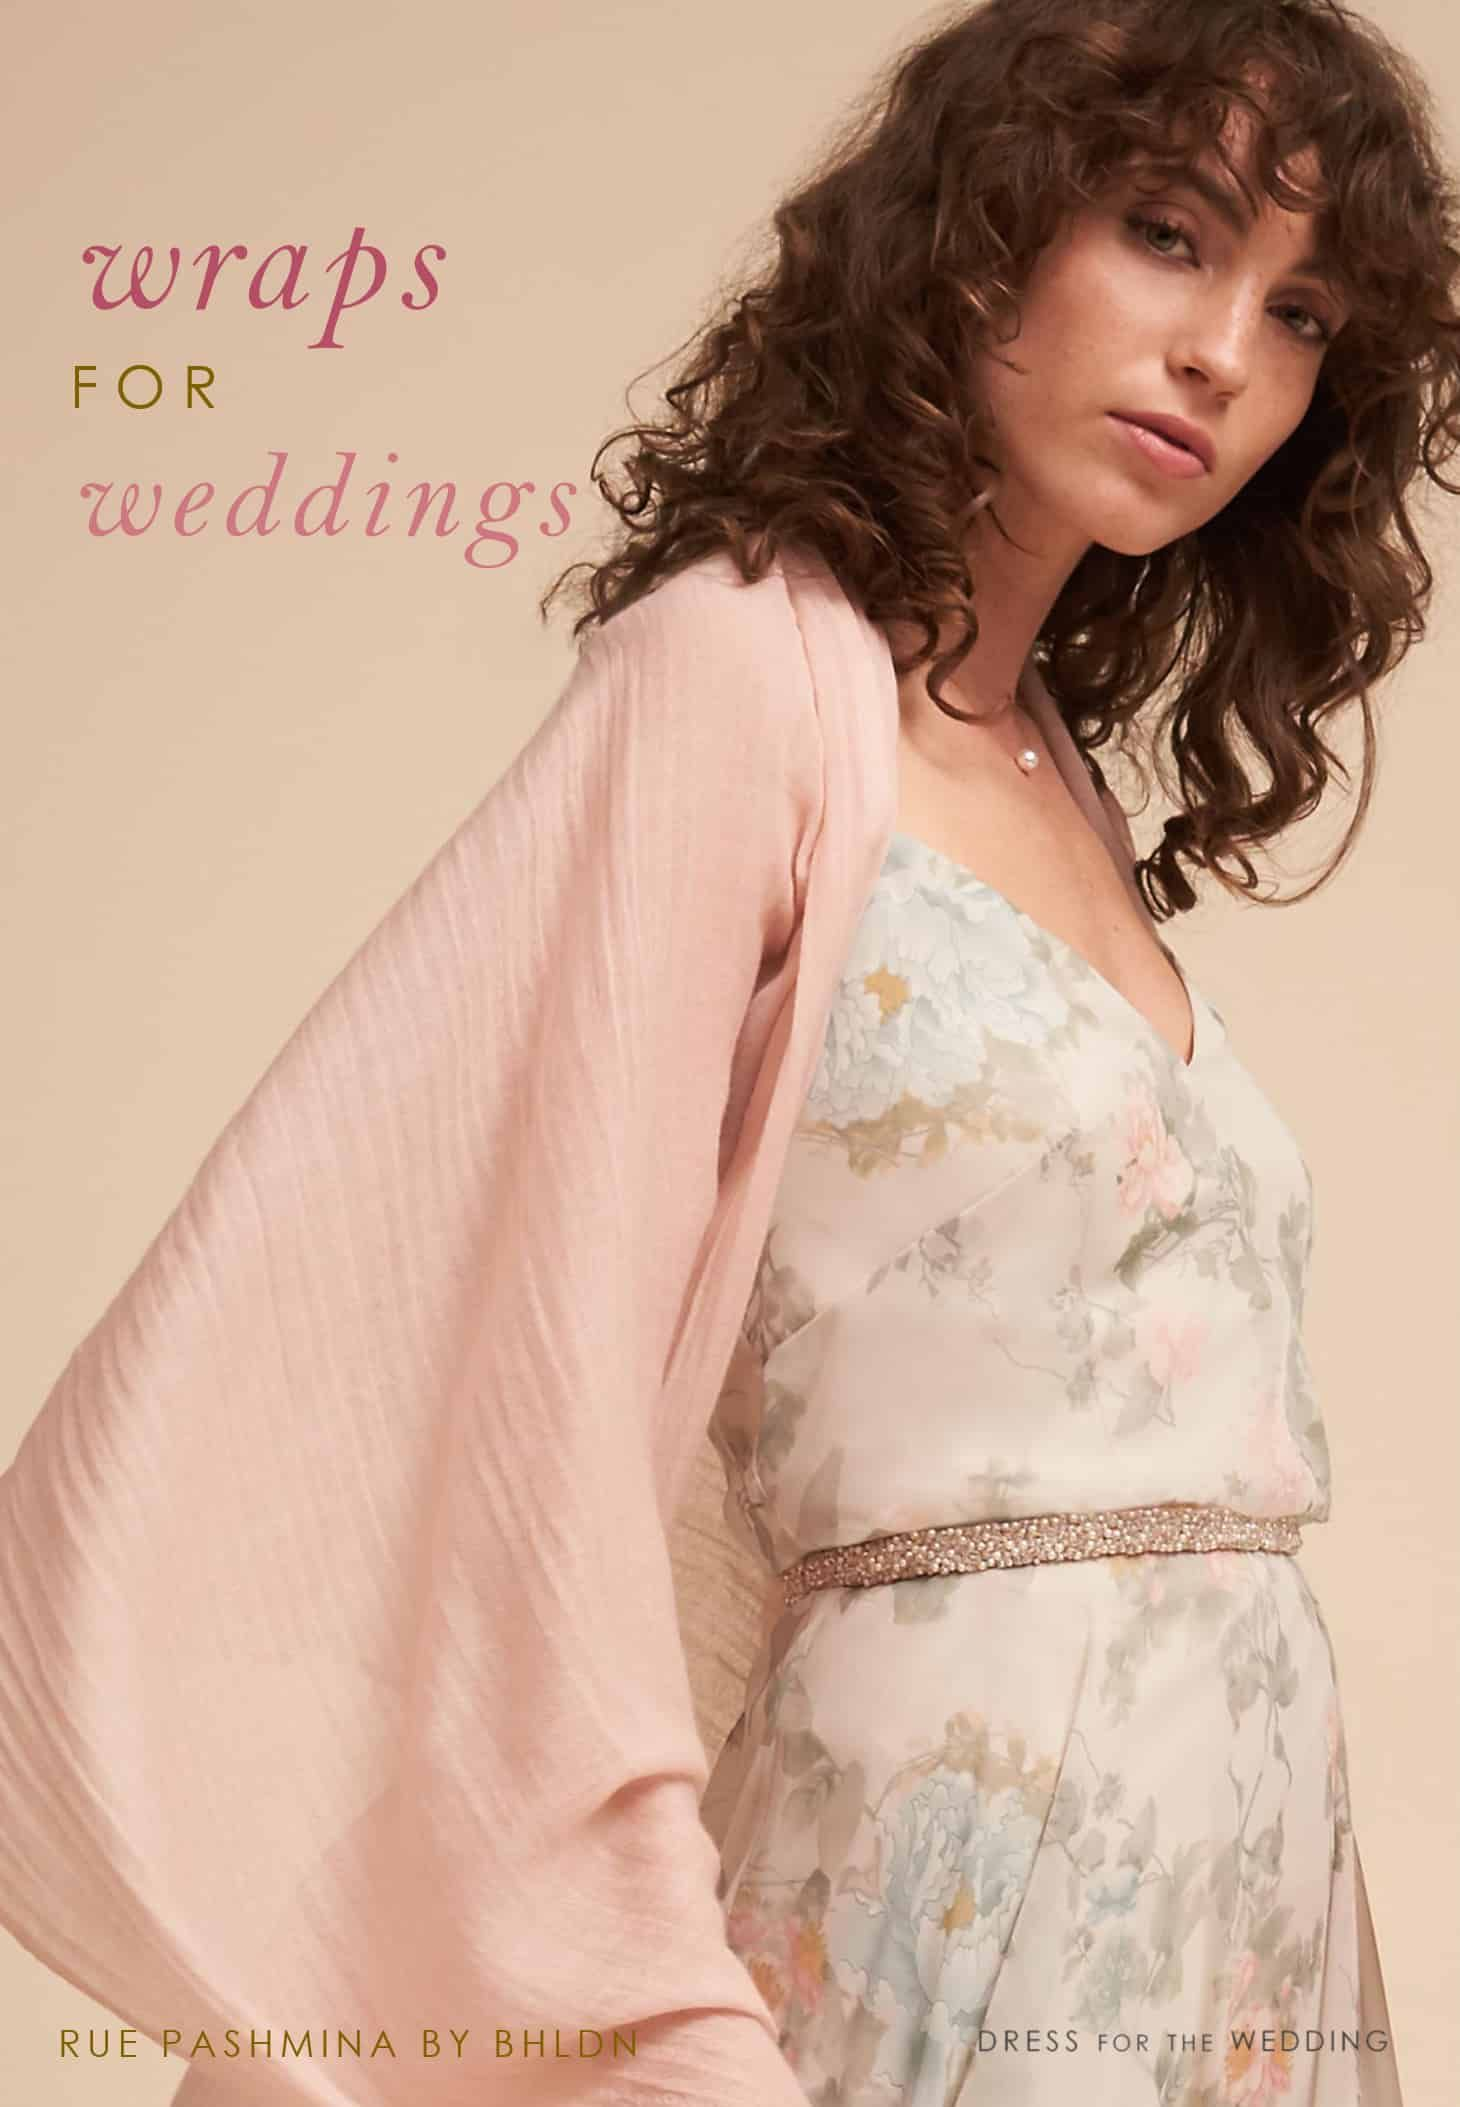 Wraps For Weddings Shawls And Cover Ups For Guests Bridesmaids And Mothers Dress For The Wedding Fall Wedding Guest Dress Wedding Attire Guest Wedding Guest Outfit [ 2107 x 1460 Pixel ]